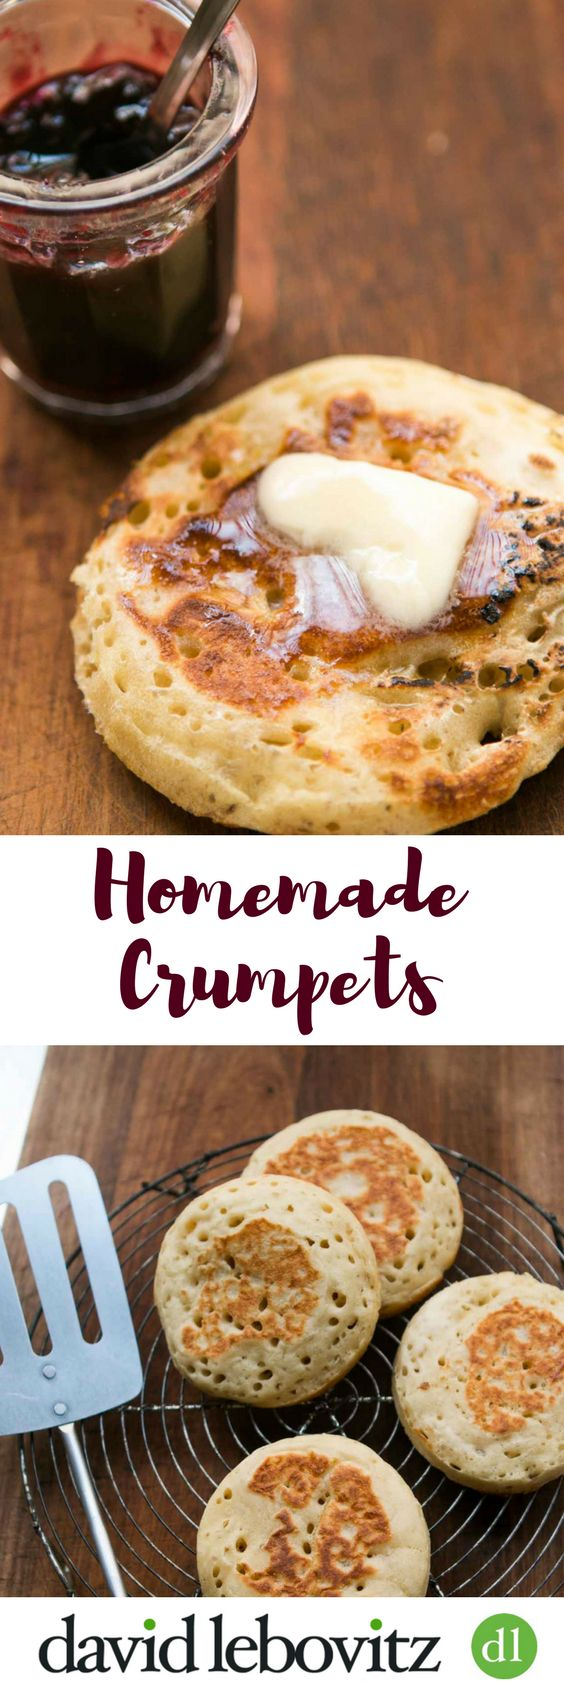 Make your own crumpets at home! Perfect with butter & jam...